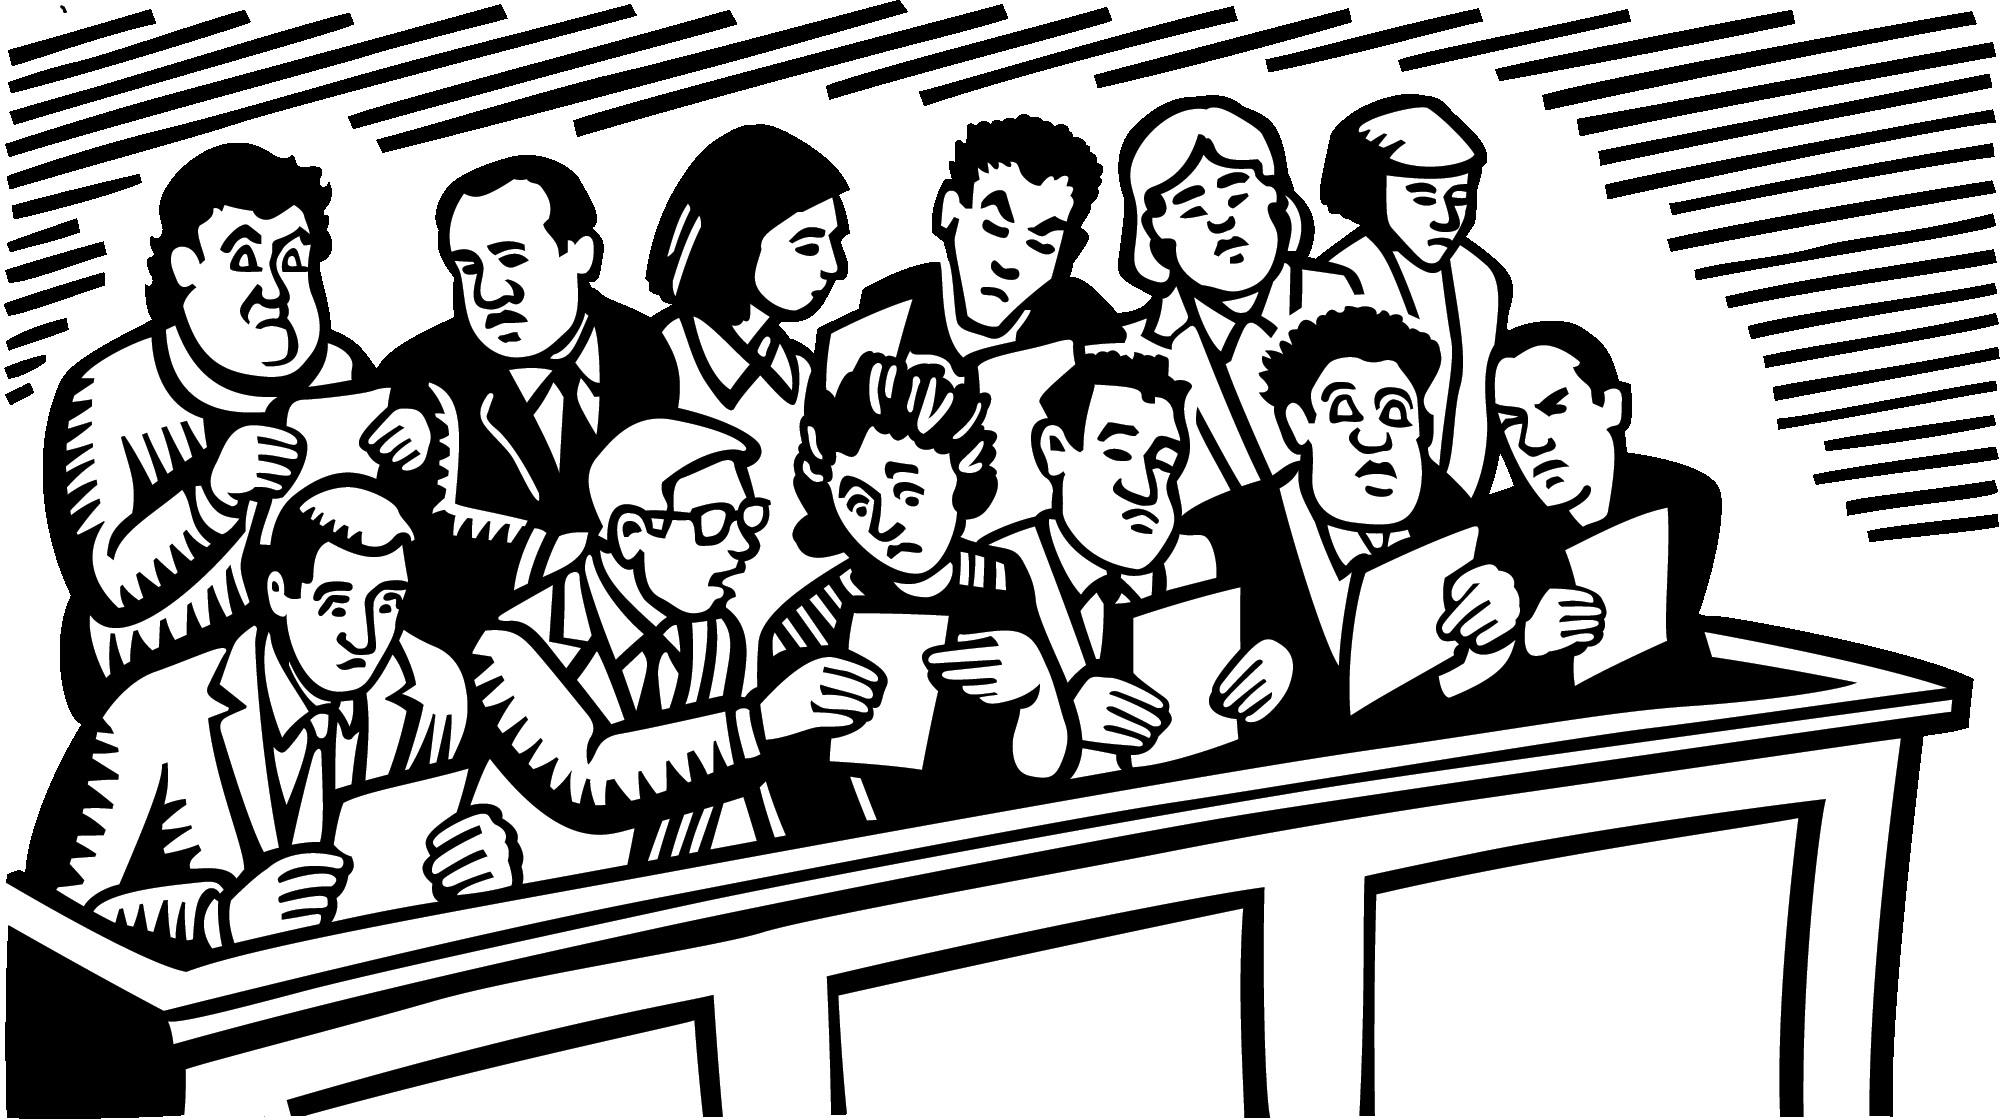 Jury clipart. What the cares most